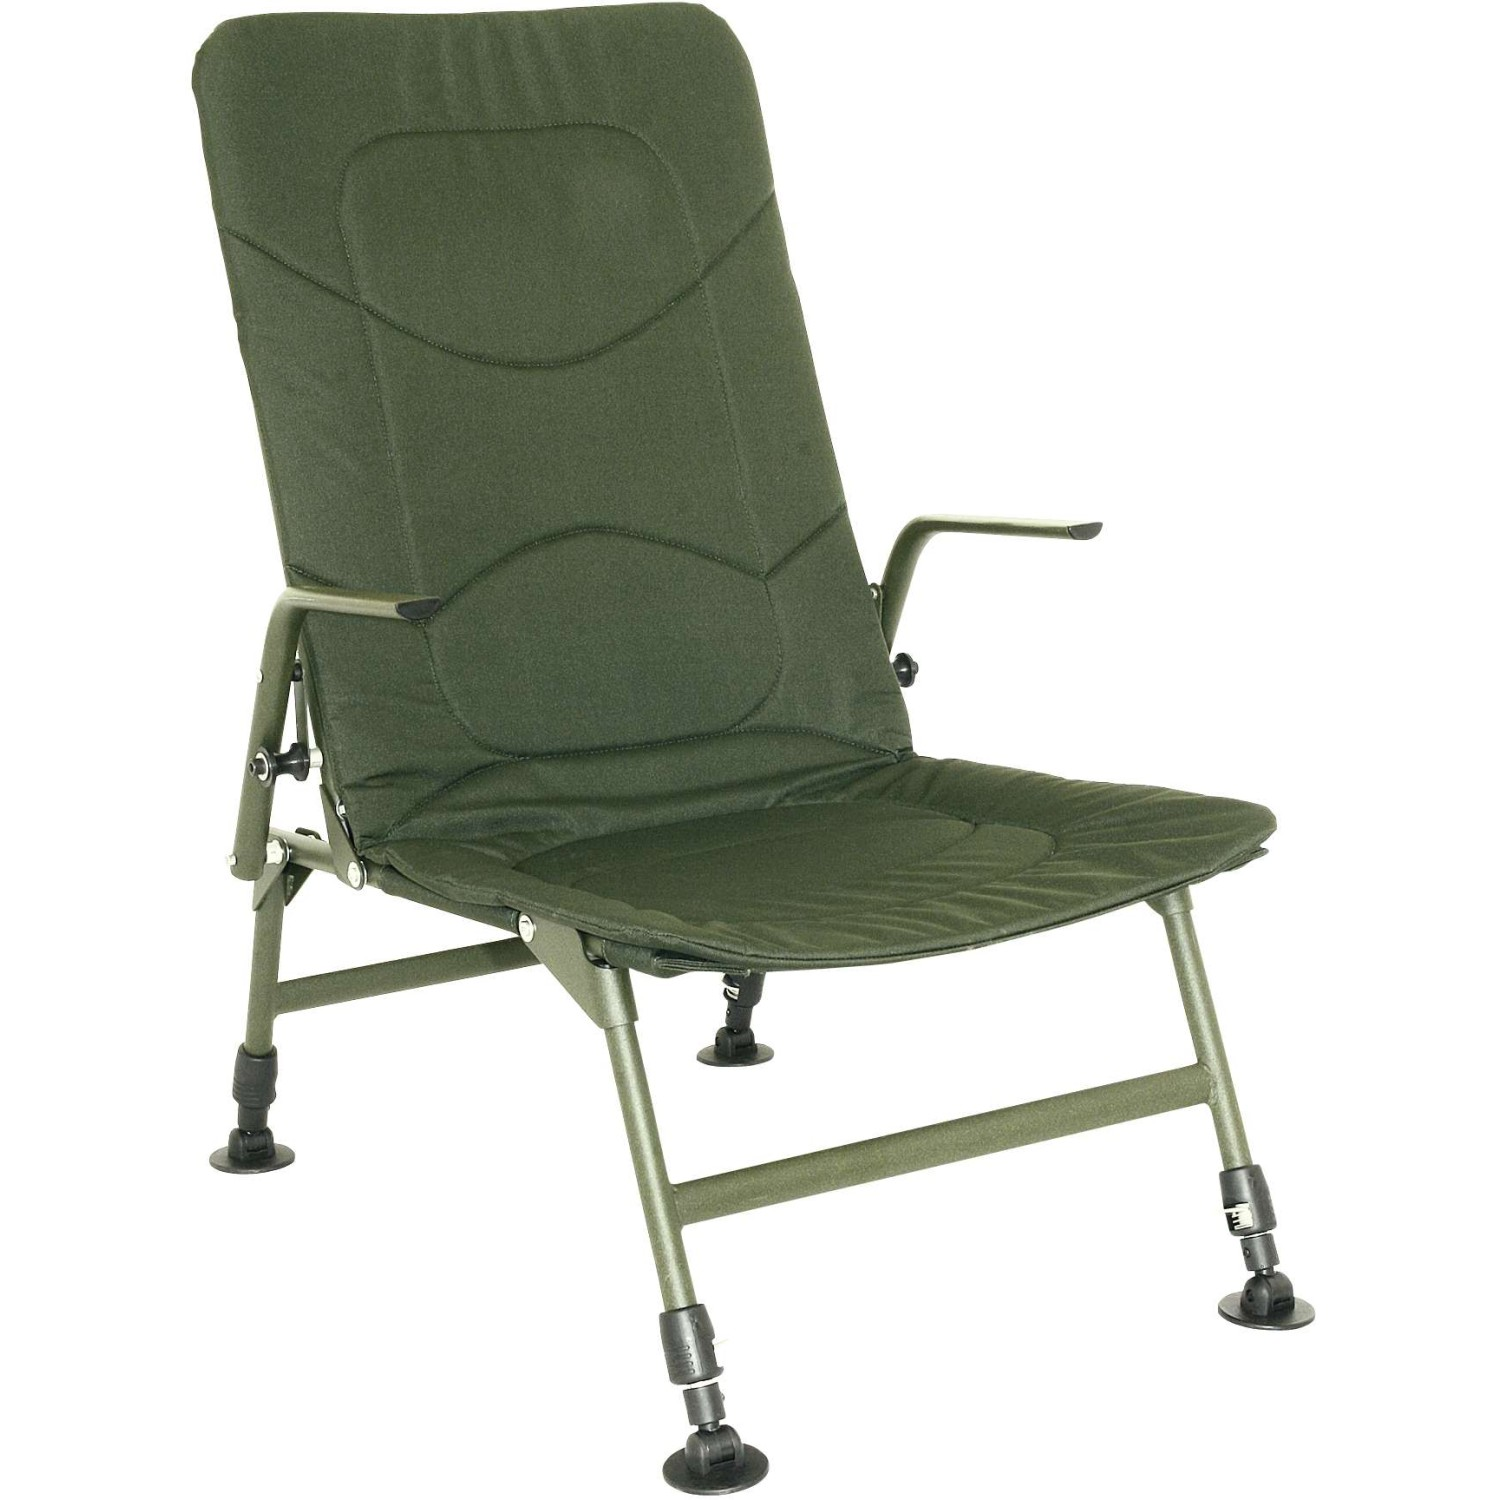 Pelzer Compact Chair